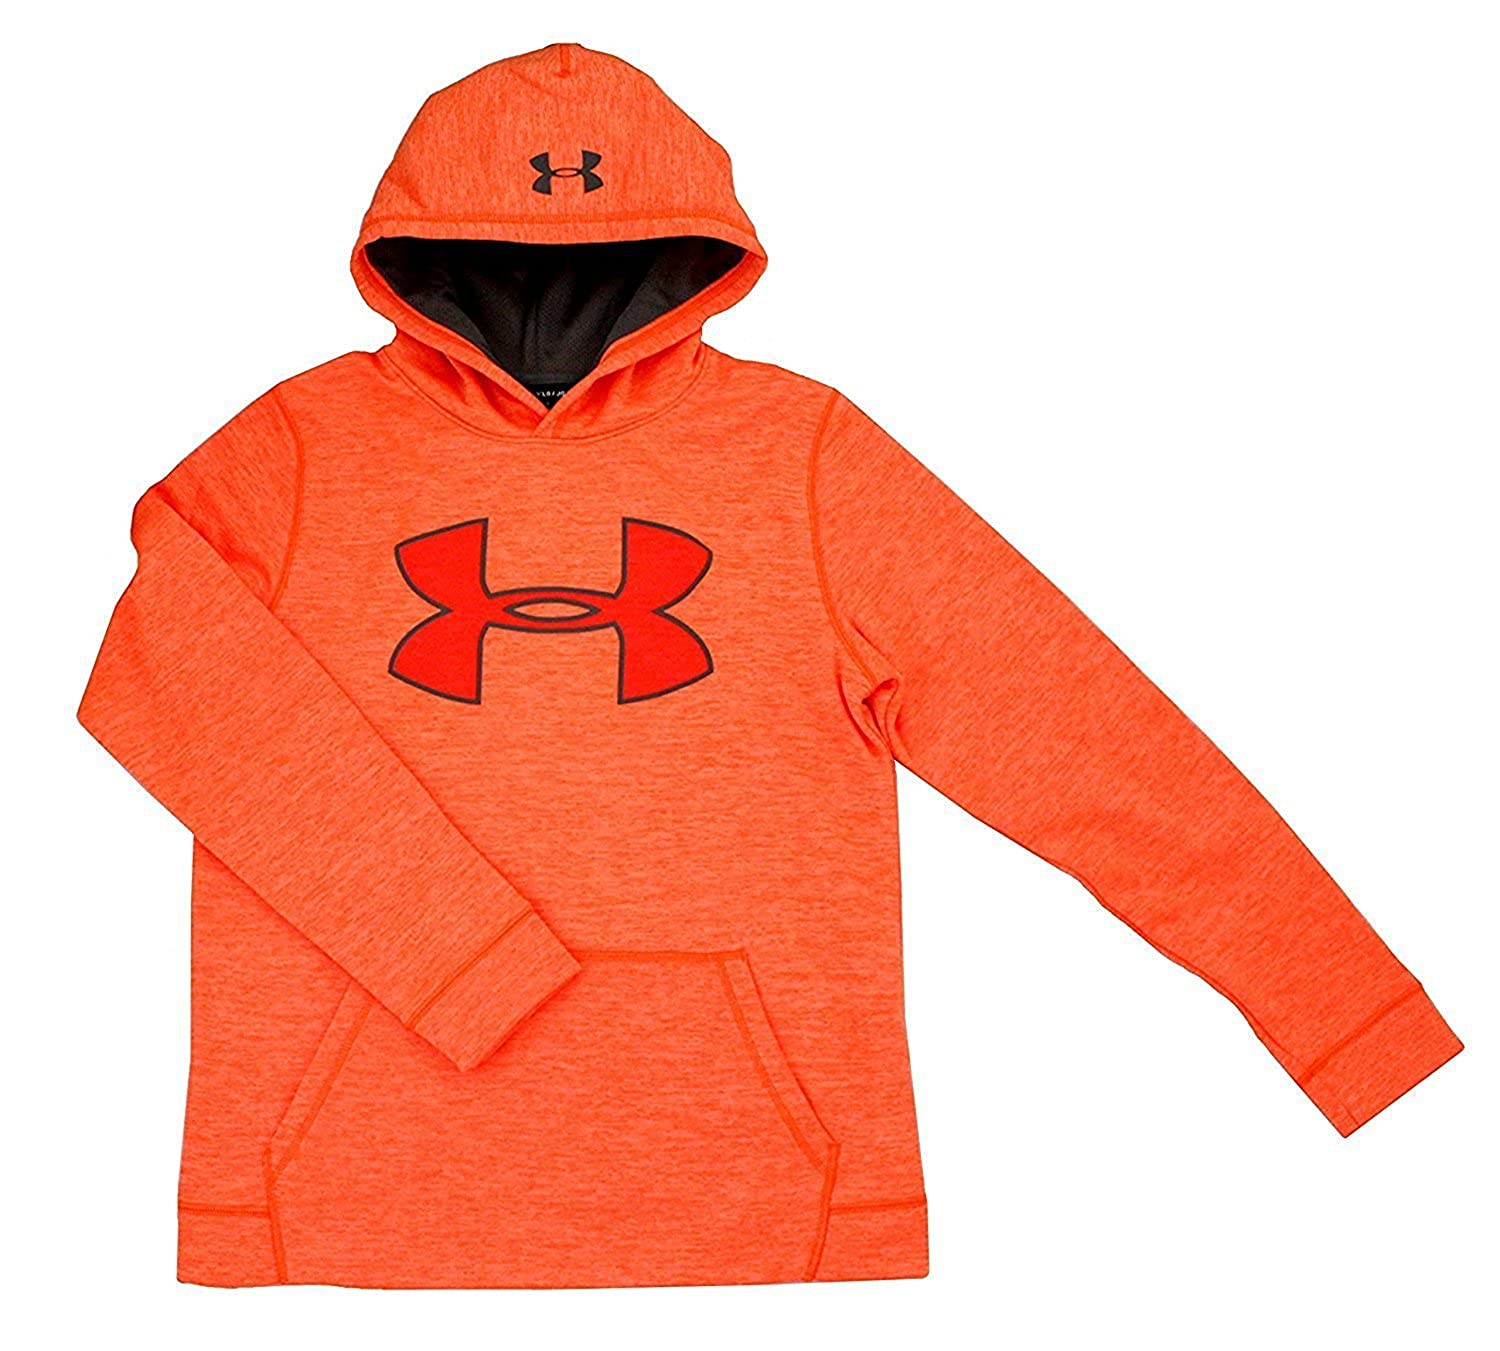 Under Armour Big Boys Youth 8-18 Athletic STORM Fleece Hoodie Water Resistant